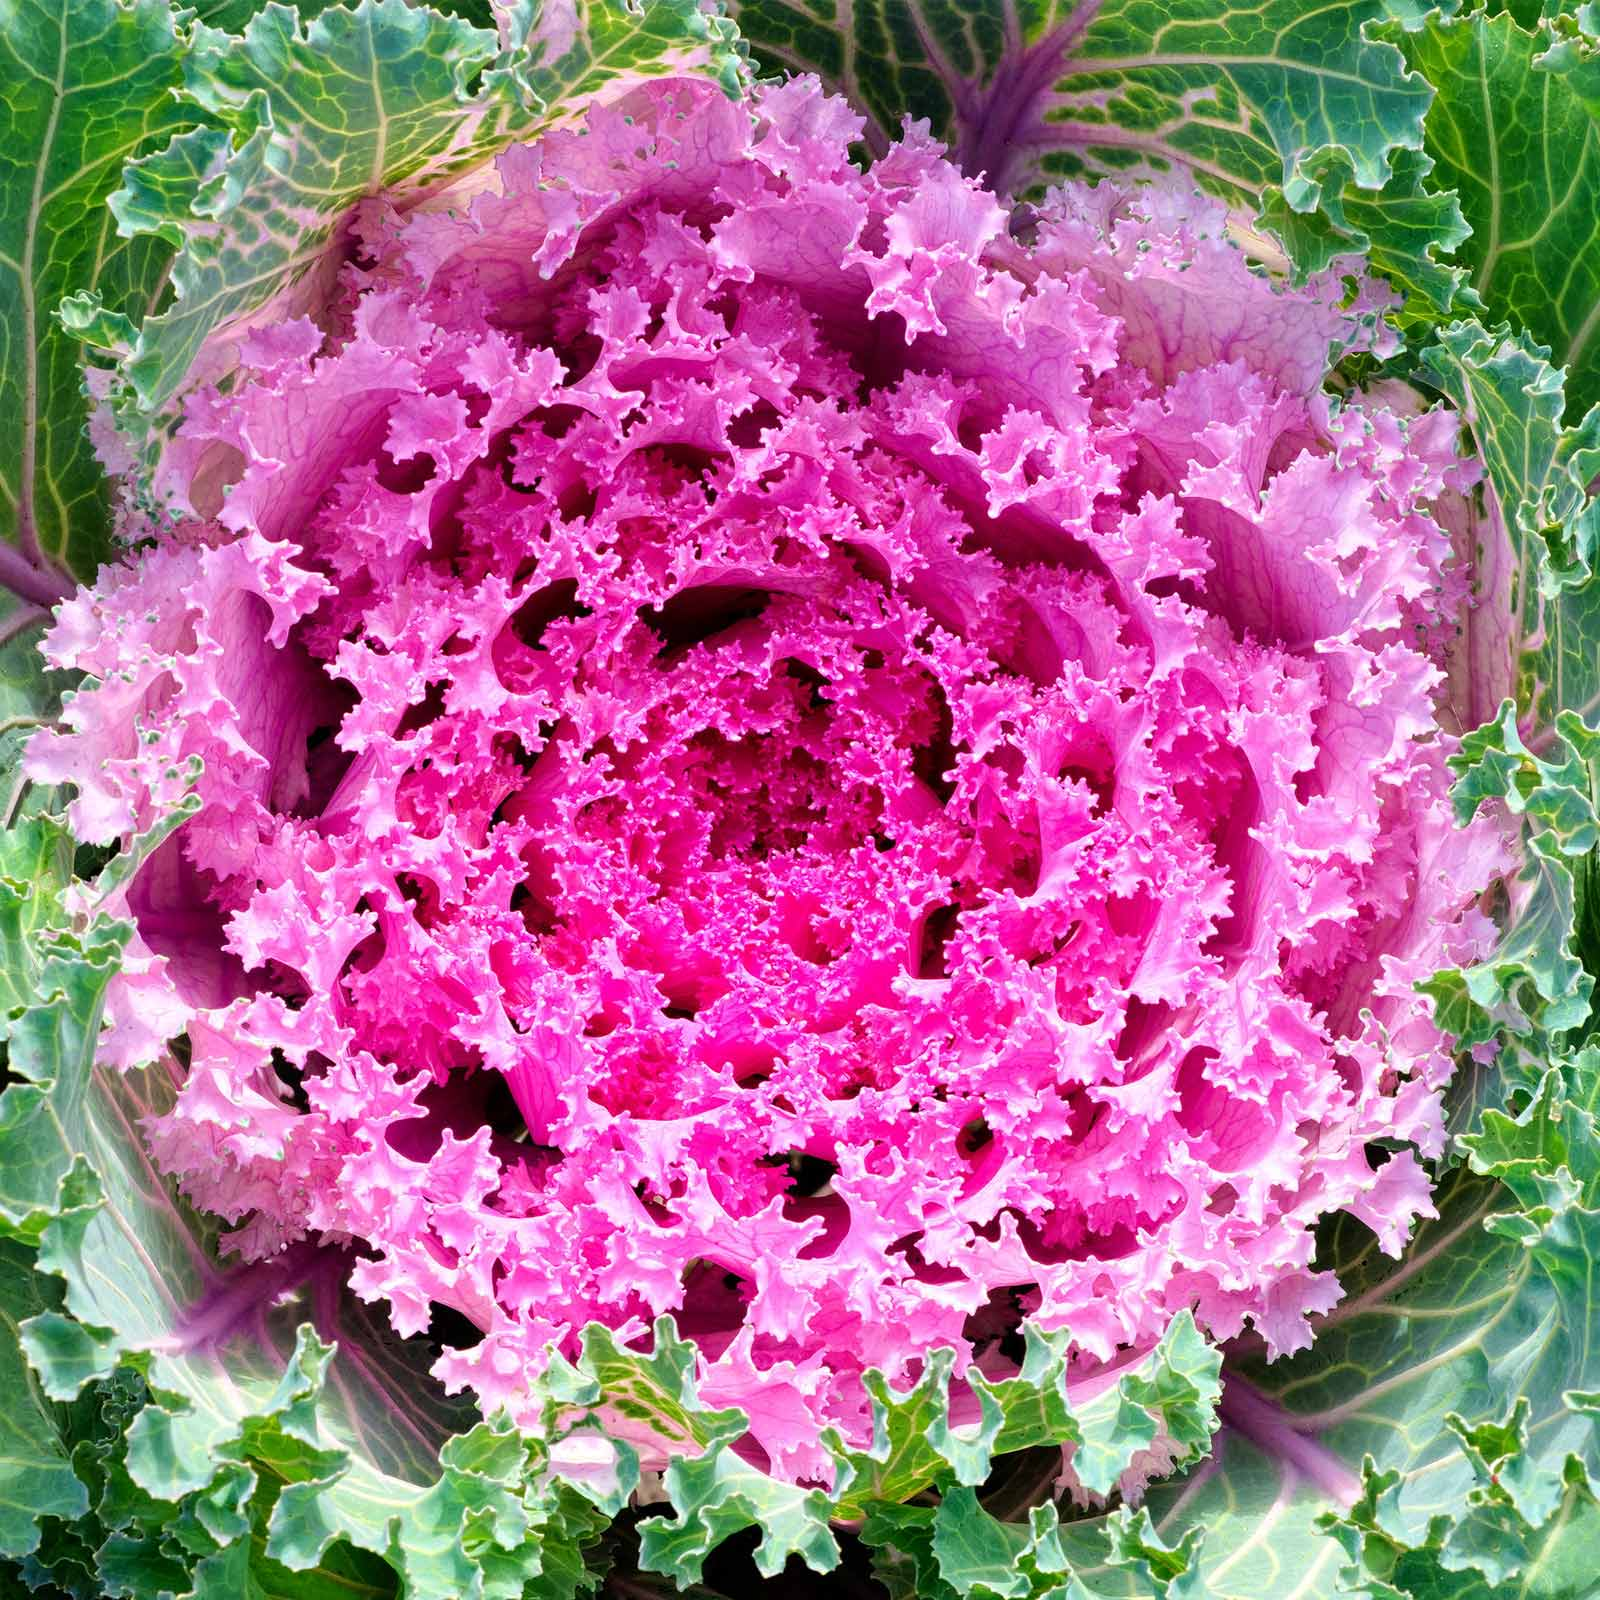 Kamome Series Flowering Kale Garden Seeds - Mix - 1000 Seeds - Non-GMO Vegetable Gardening Seed - Brassica Oleracea